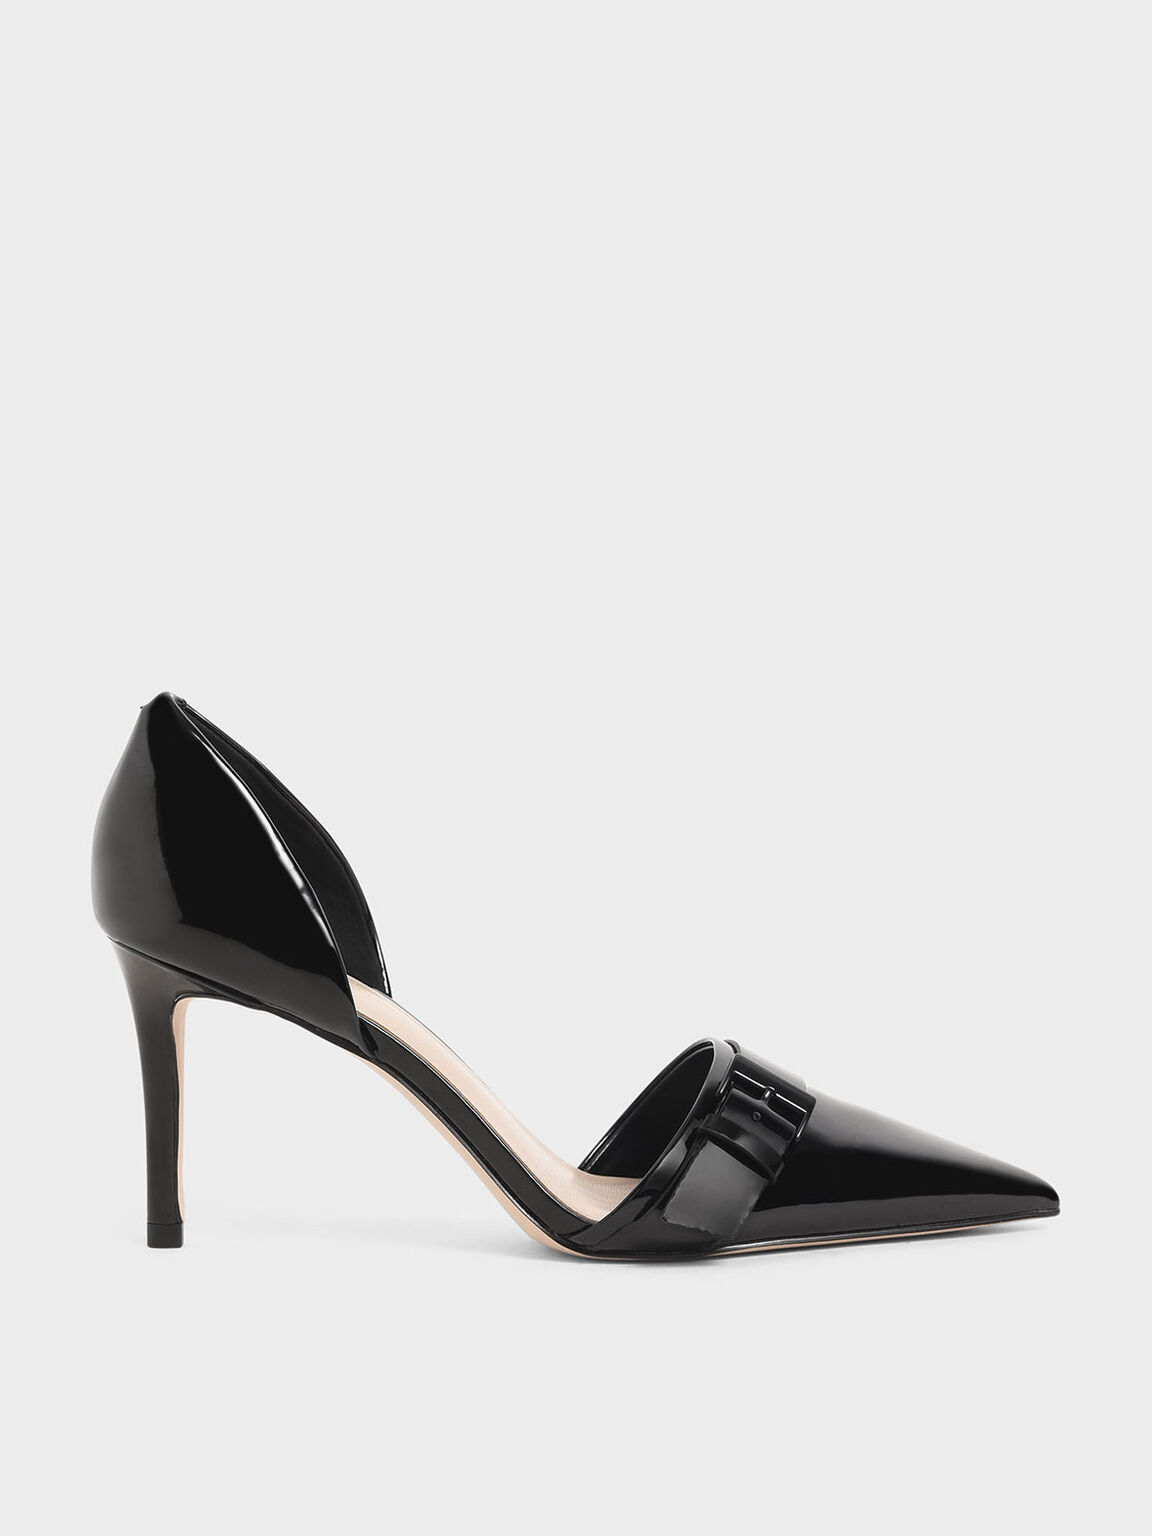 Patent Buckled D'Orsay Pumps, Black, hi-res